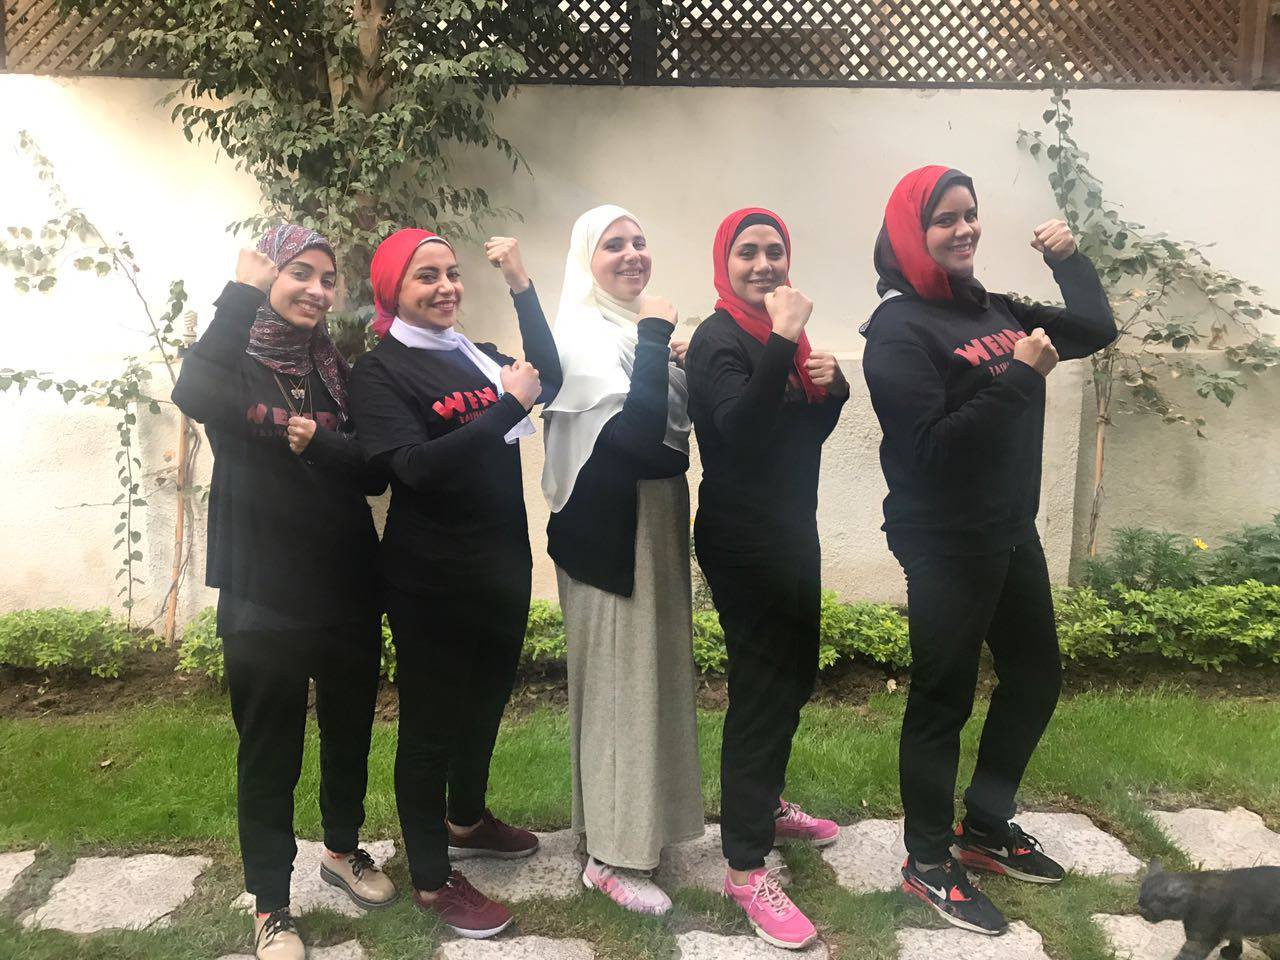 Wen-Do Trainers from Left to Right: Alaa, Maysoun, Manal, Yasmin, Amany